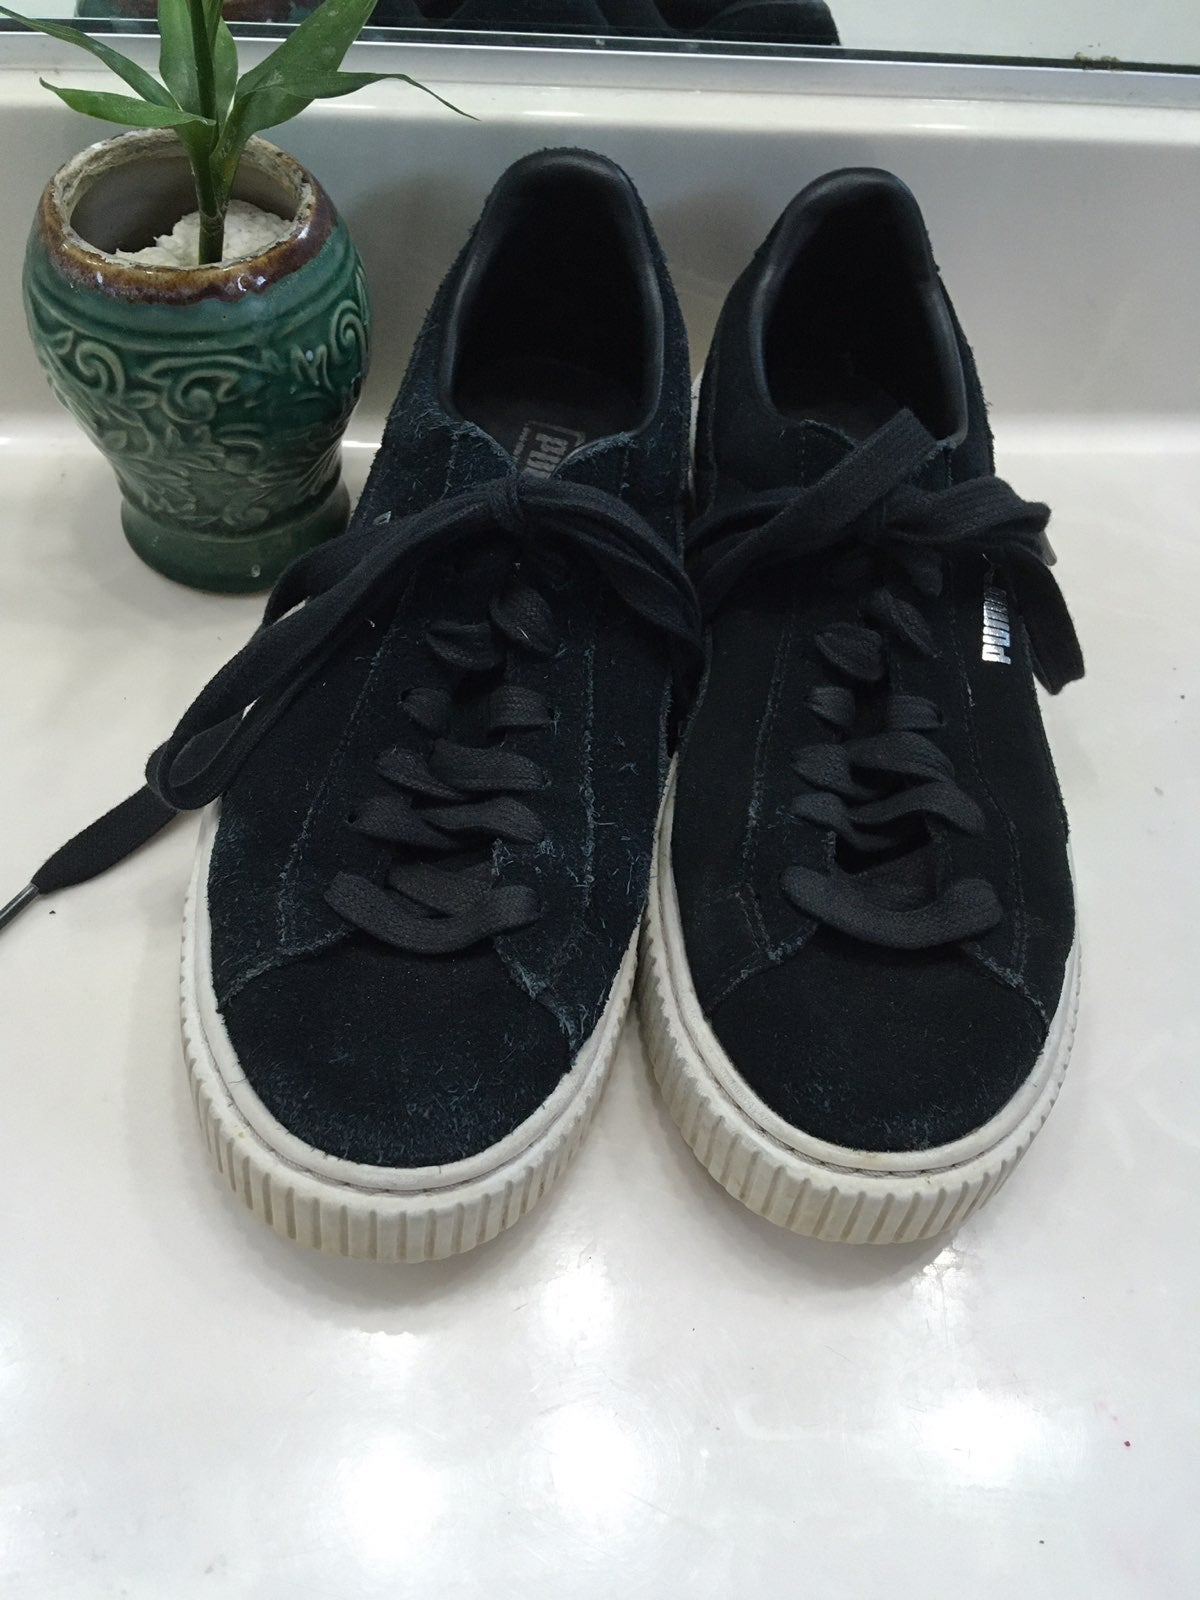 Black Suede Leather Lace Up Sneakers